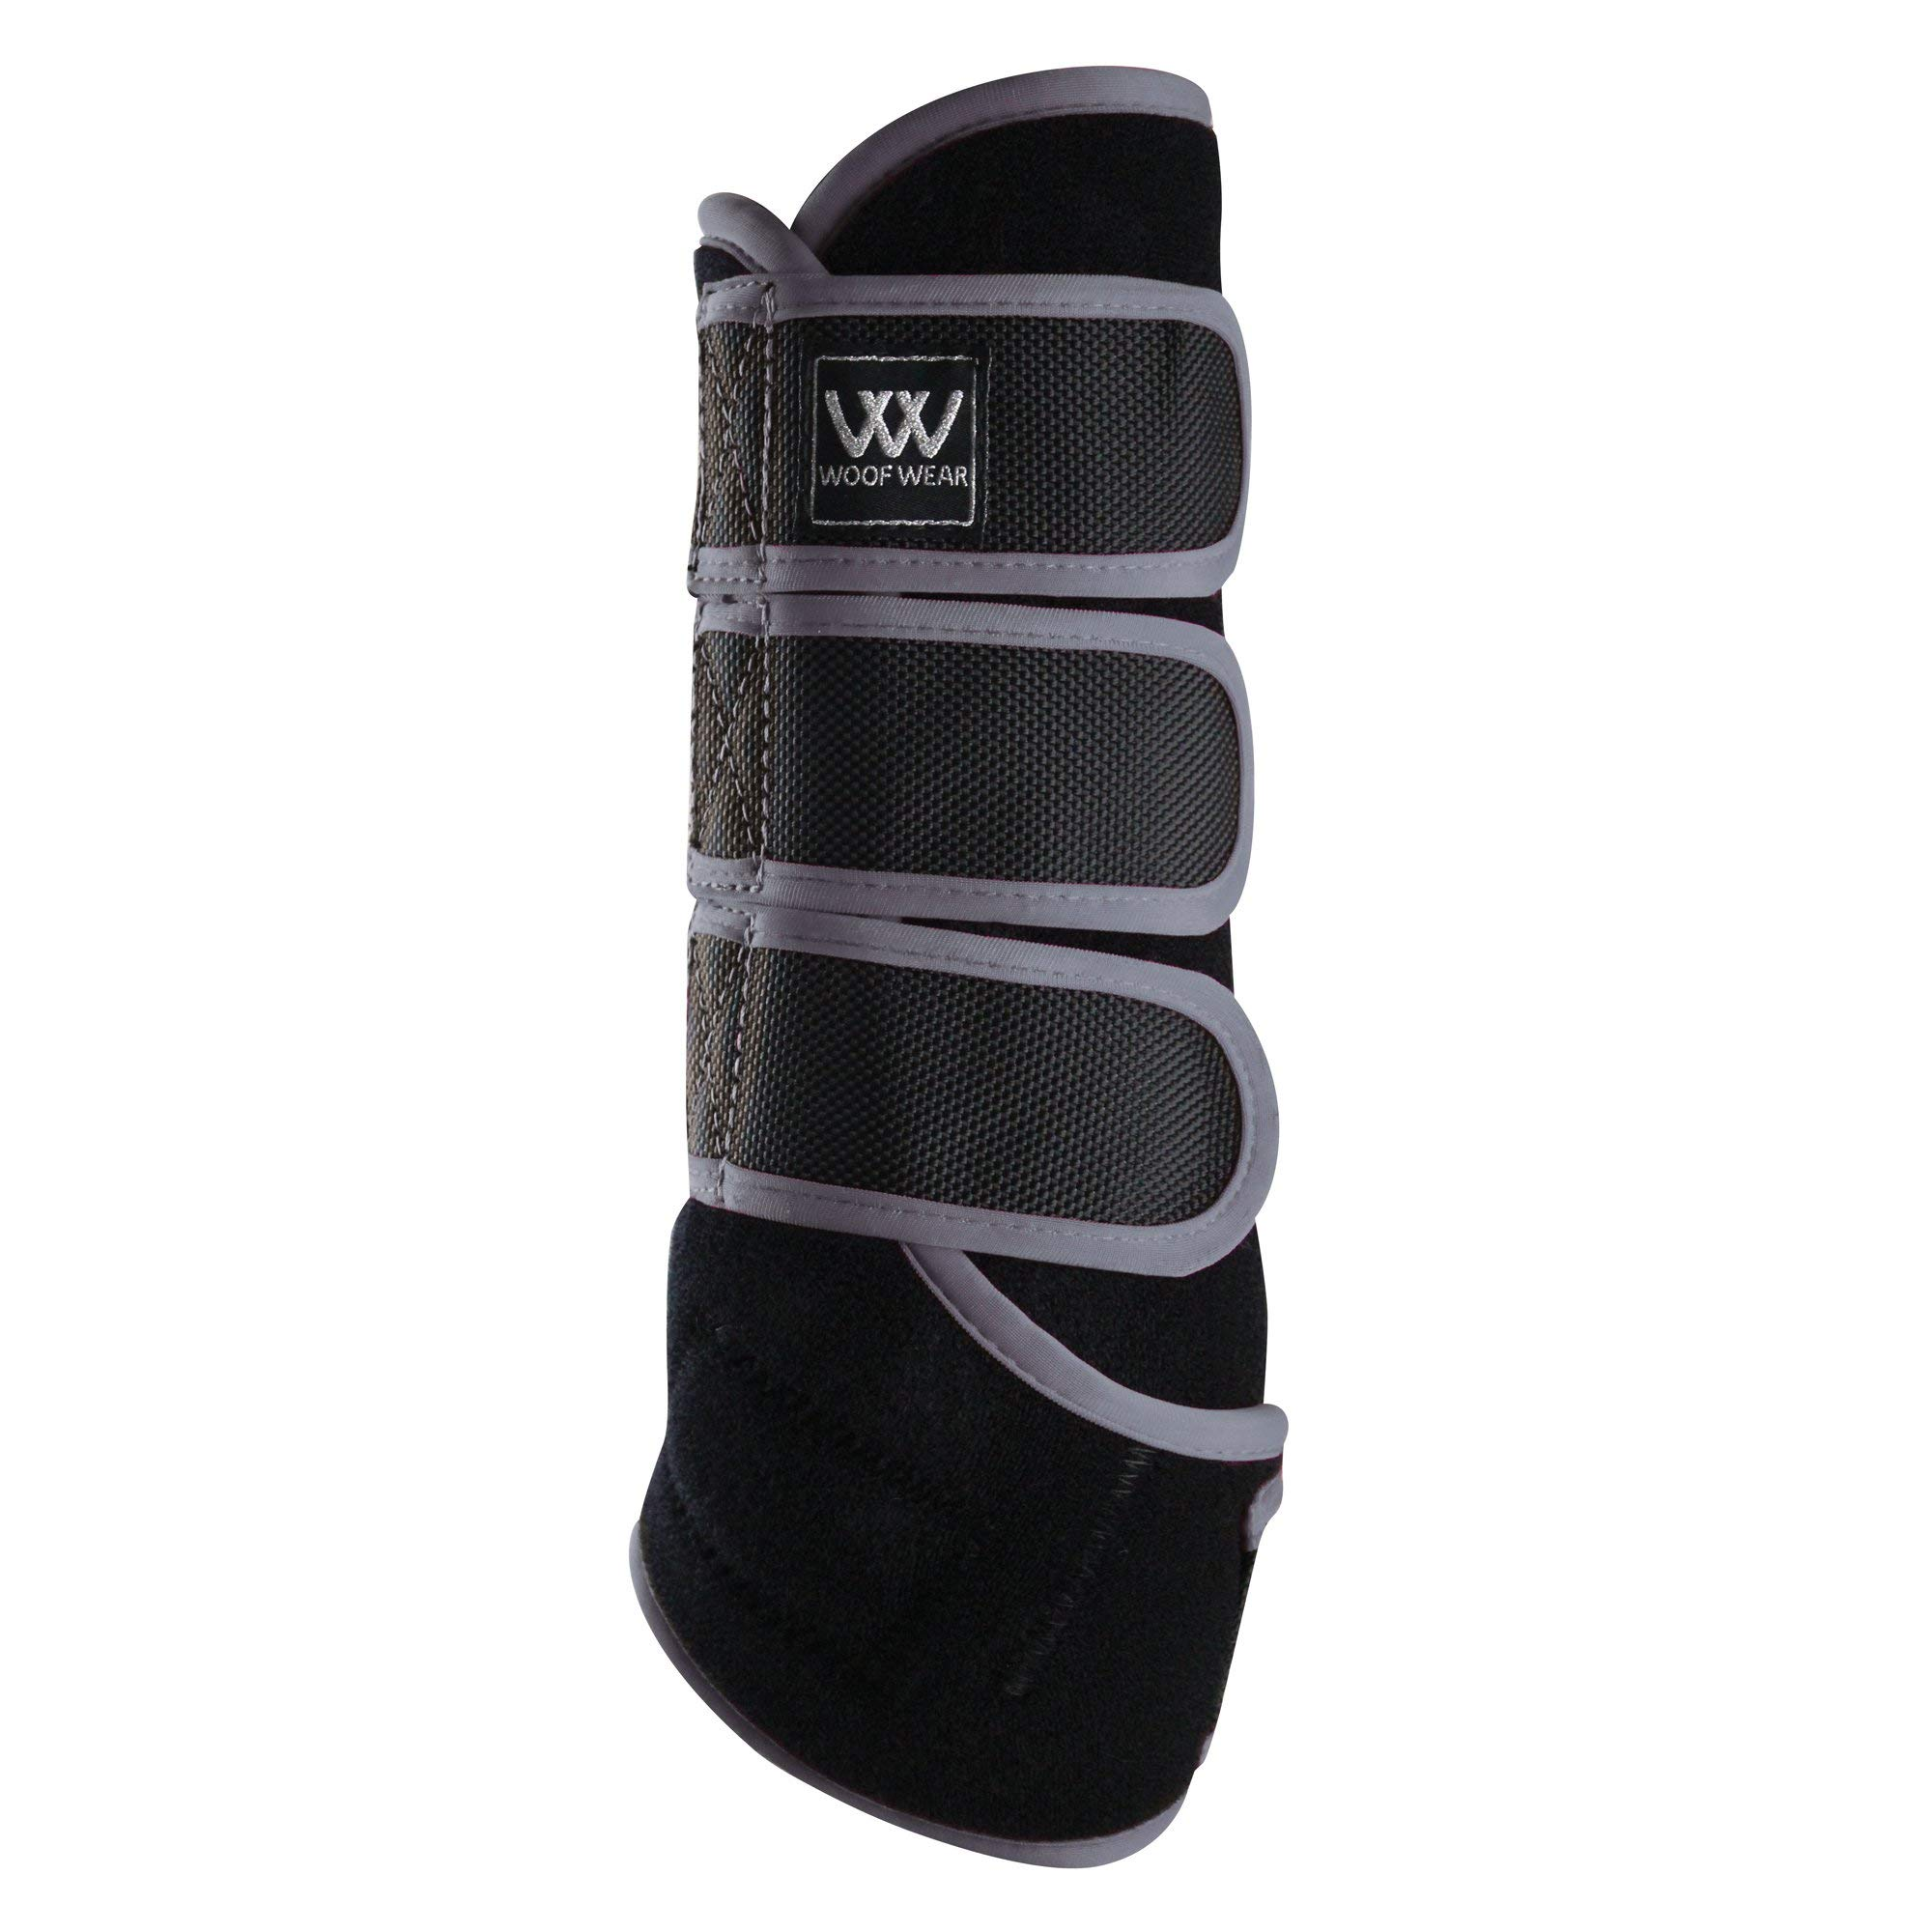 WOOF WEAR Dressage Exercise Wrap Small Black Brushed Steel